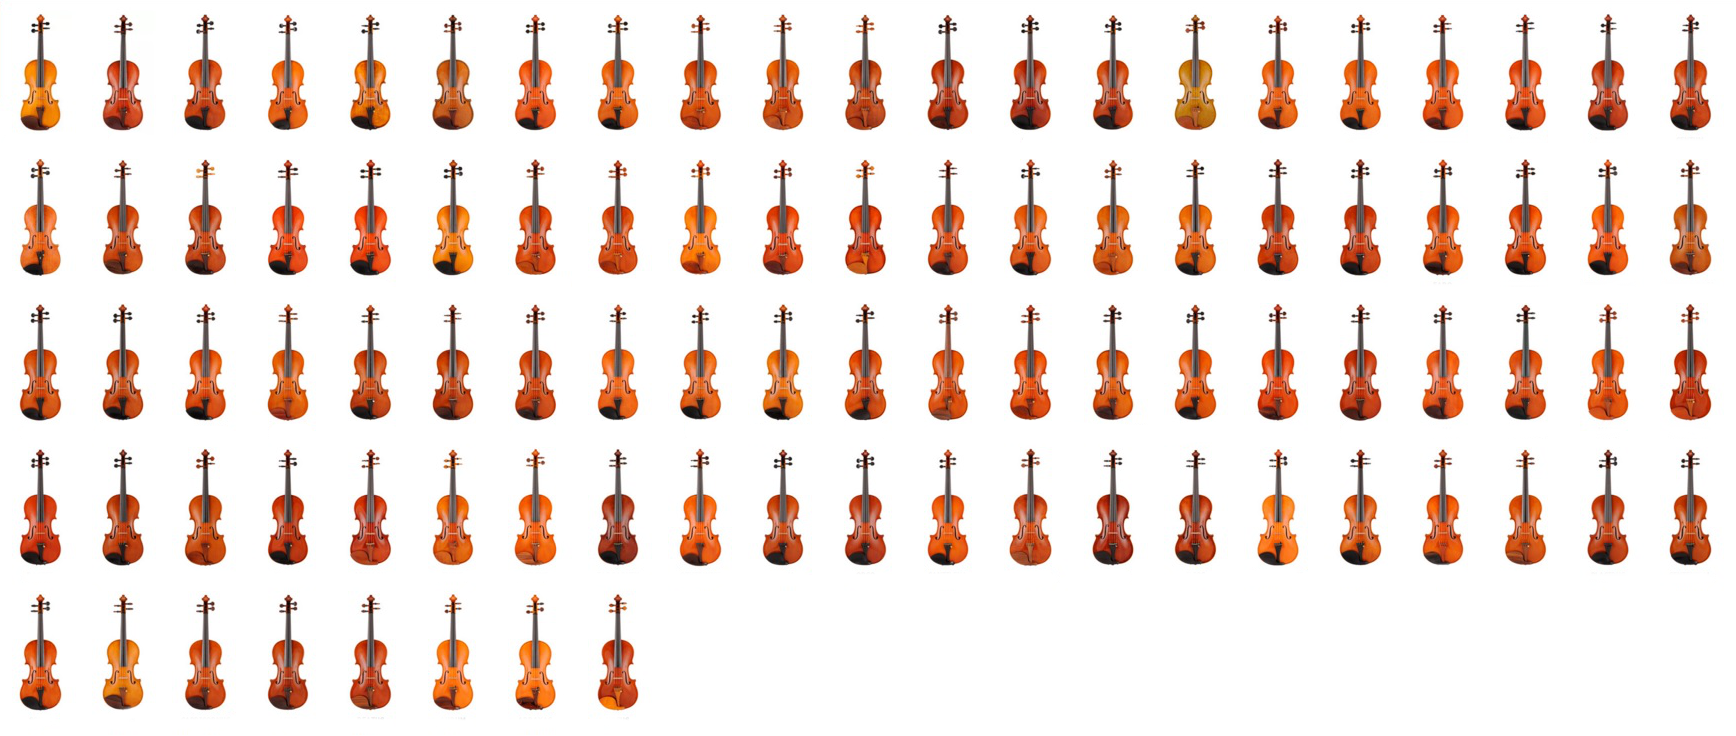 Virtual 3D gallery of violins taking part in 13th International Henryk Wieniawski Violin Making Competition (8-15.05.2016)